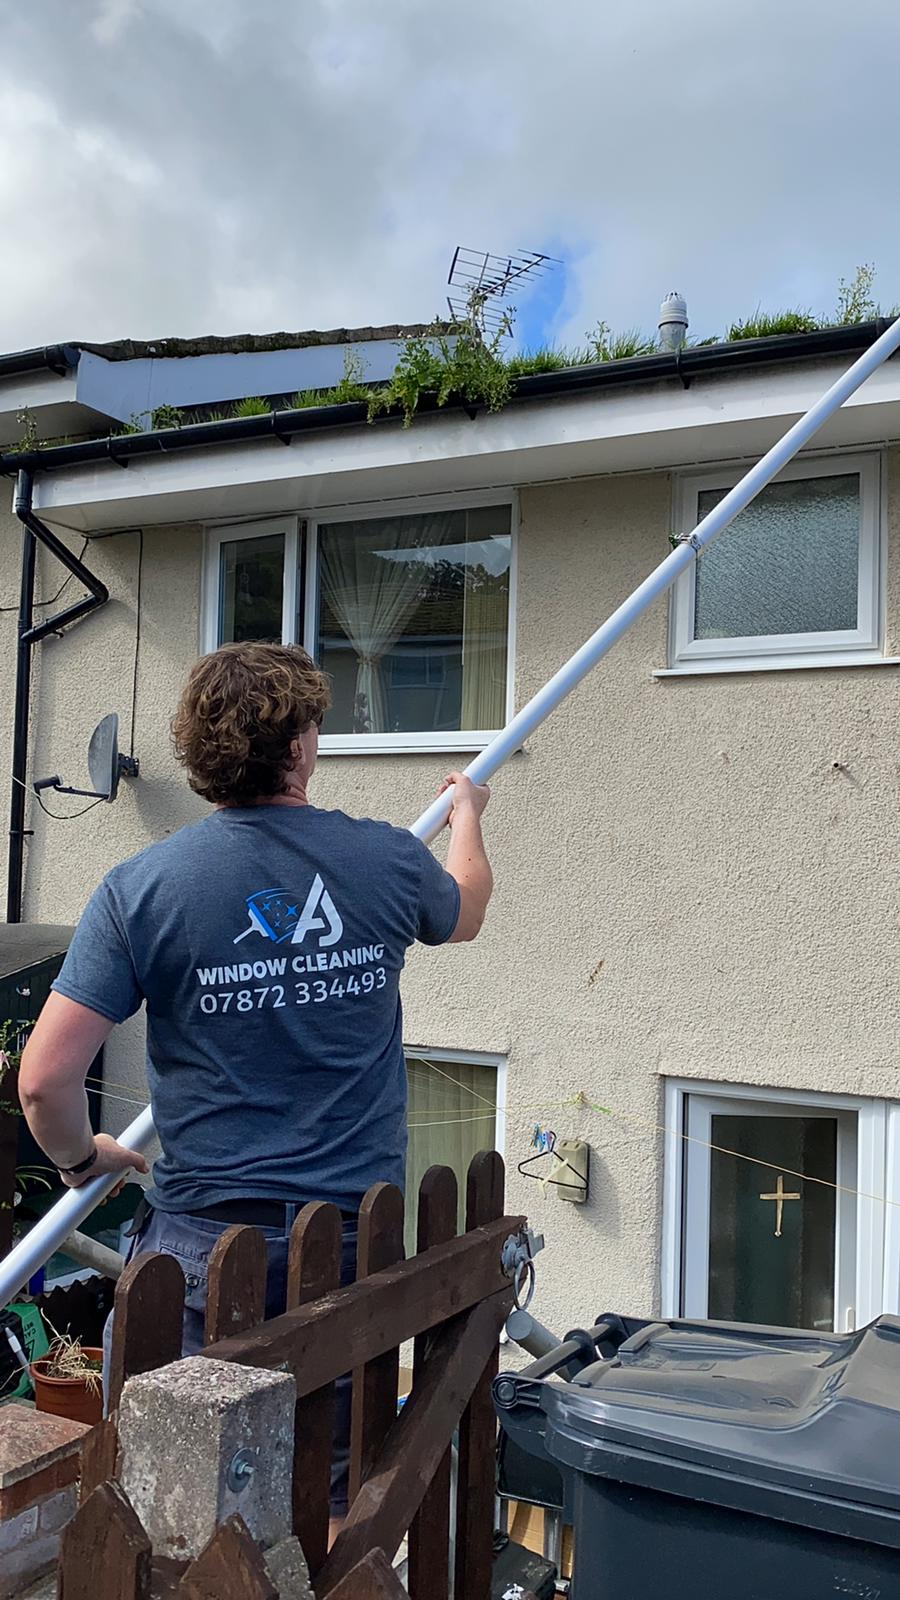 Adam cleaning domestic windows